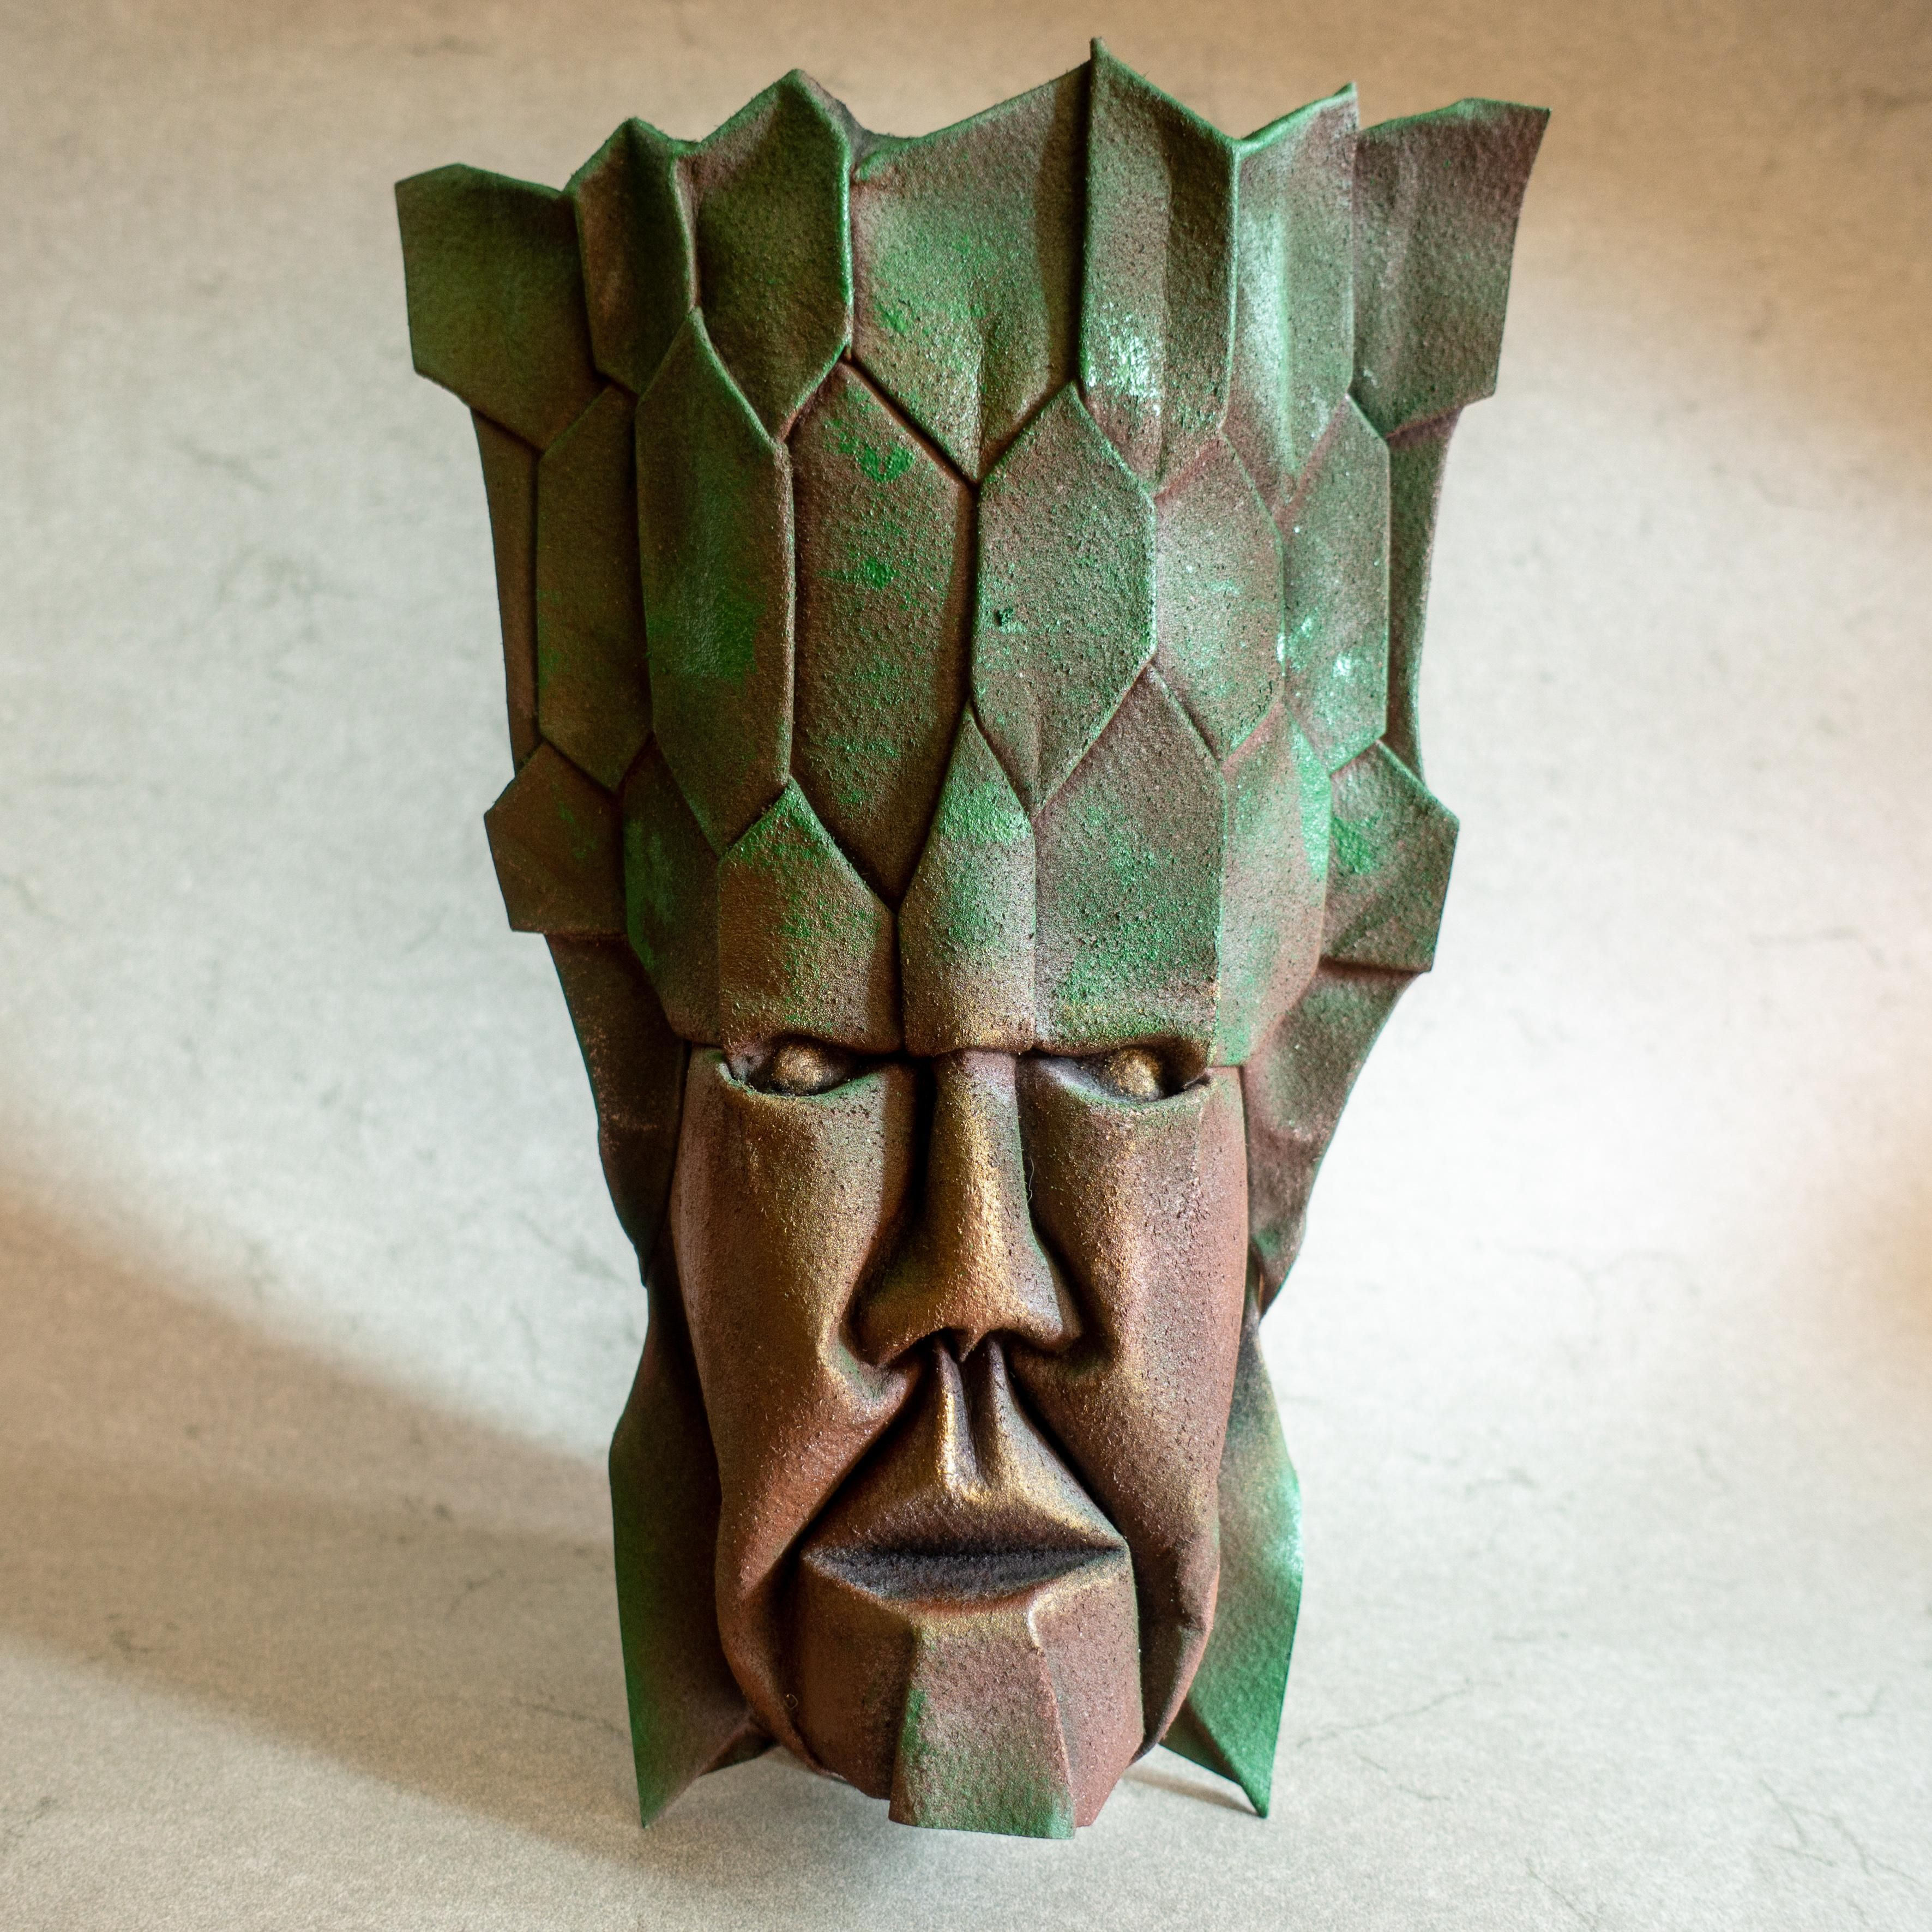 Phytosymbiosis 2 Folded Watercolor Paper 22x30 Cm Art Pinterest Science Fiction Origami Diagrams Mask Design Papercraft